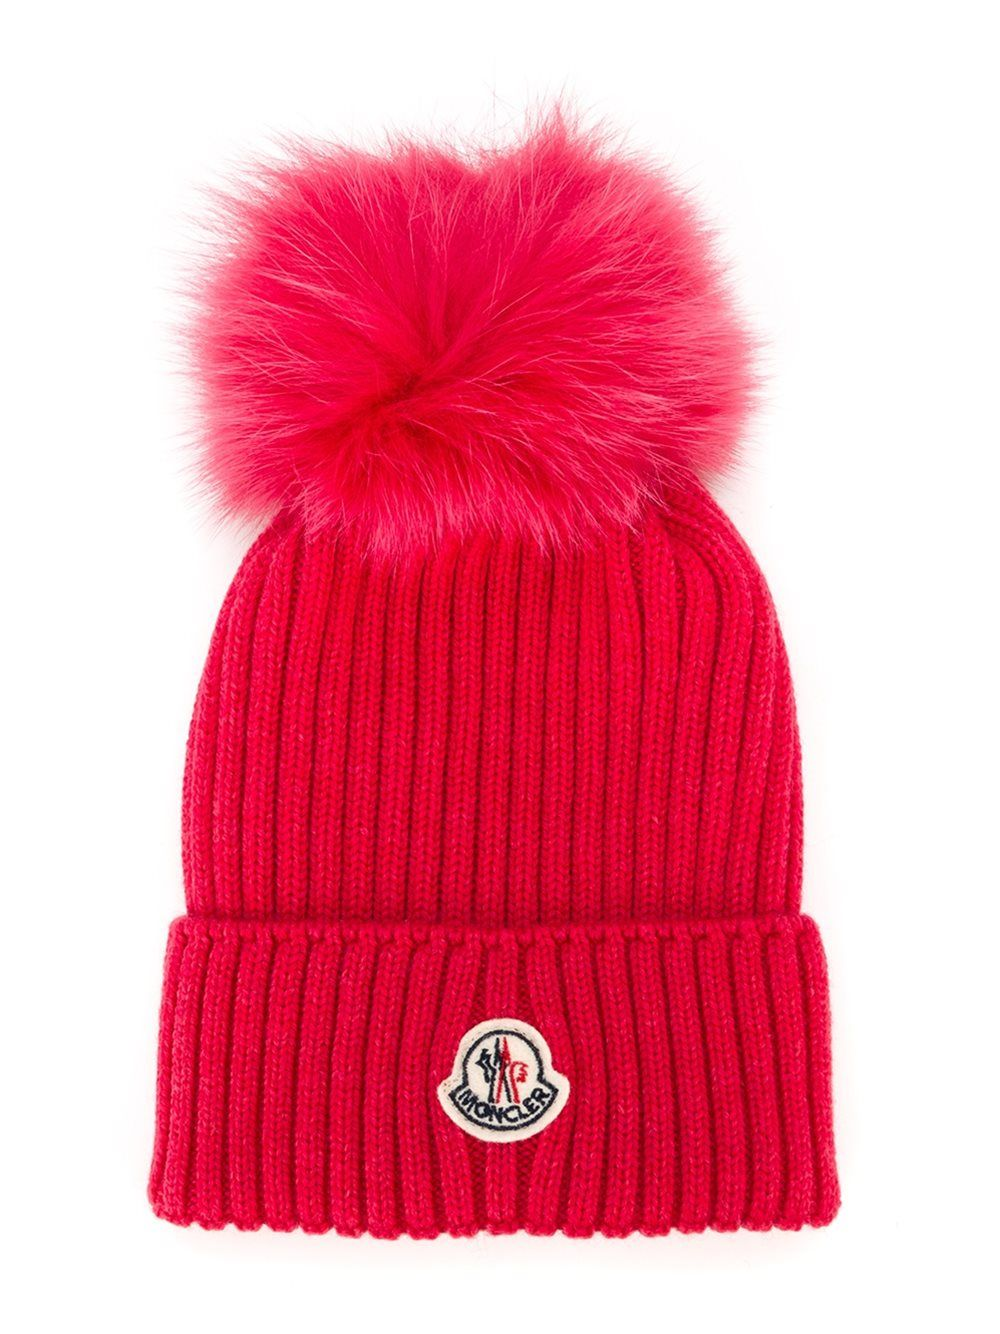 23e9bd4521264c moncler #kids #beanie #fur #red #pompom #hats #new www.jofre.eu ...